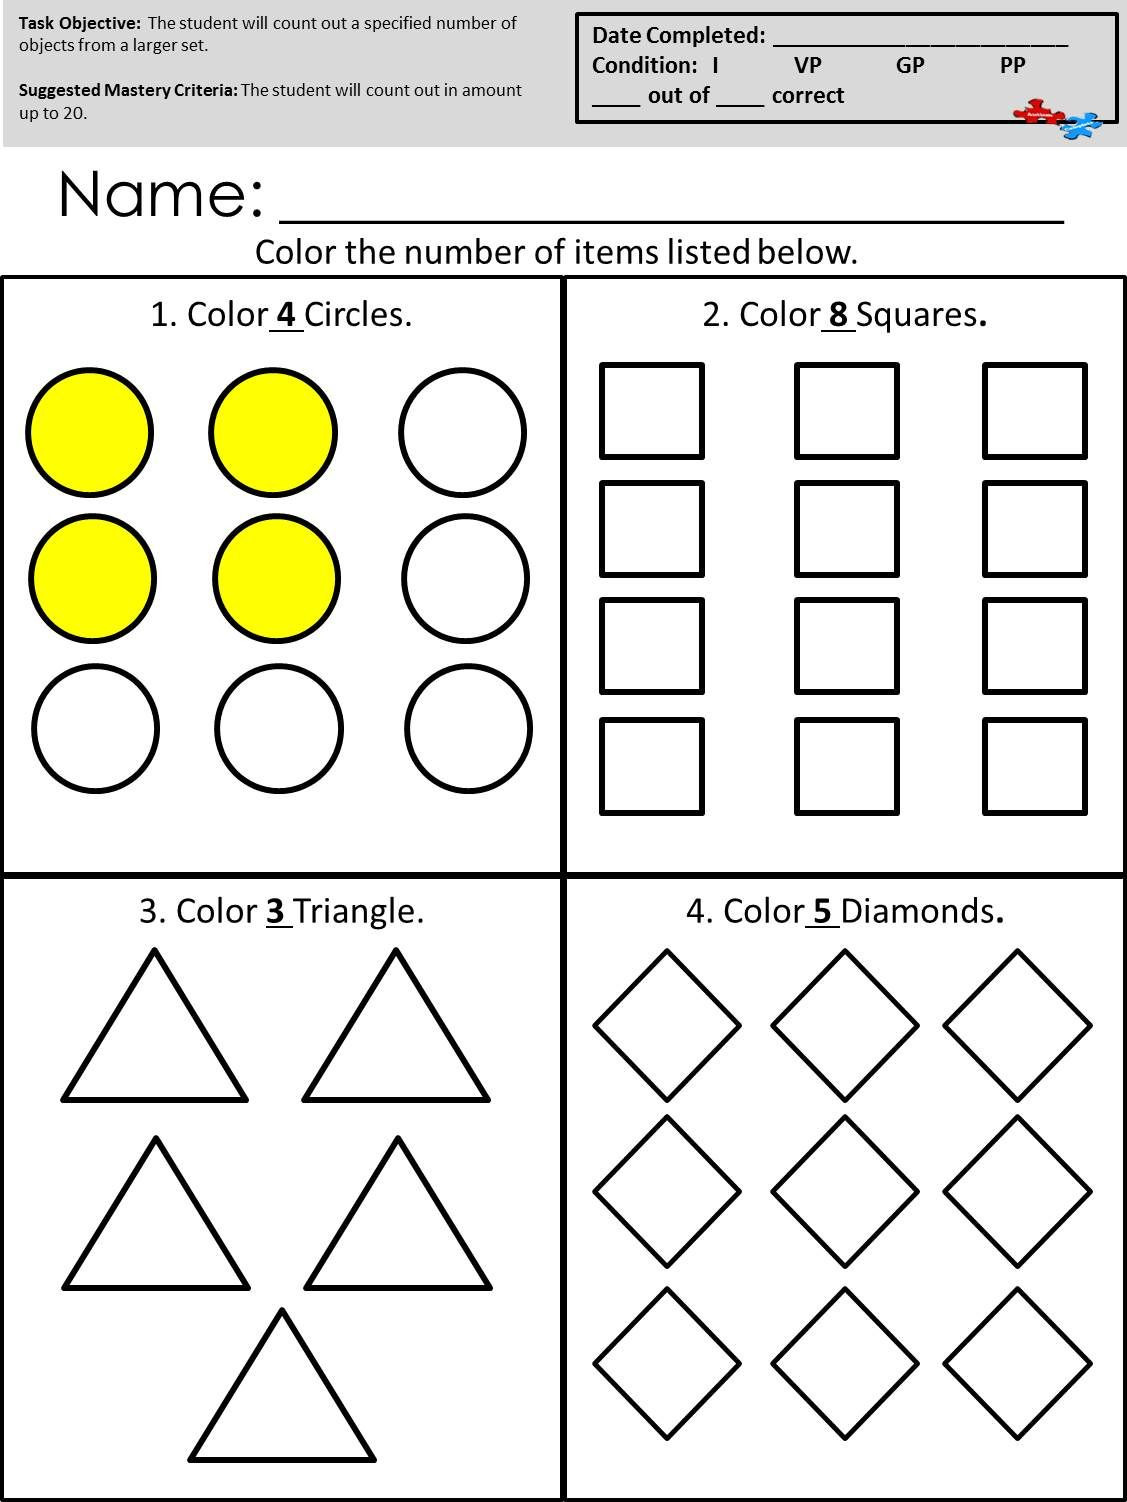 Math Worksheets for Autistic Students Count Out Objects From A Larger Set Available at